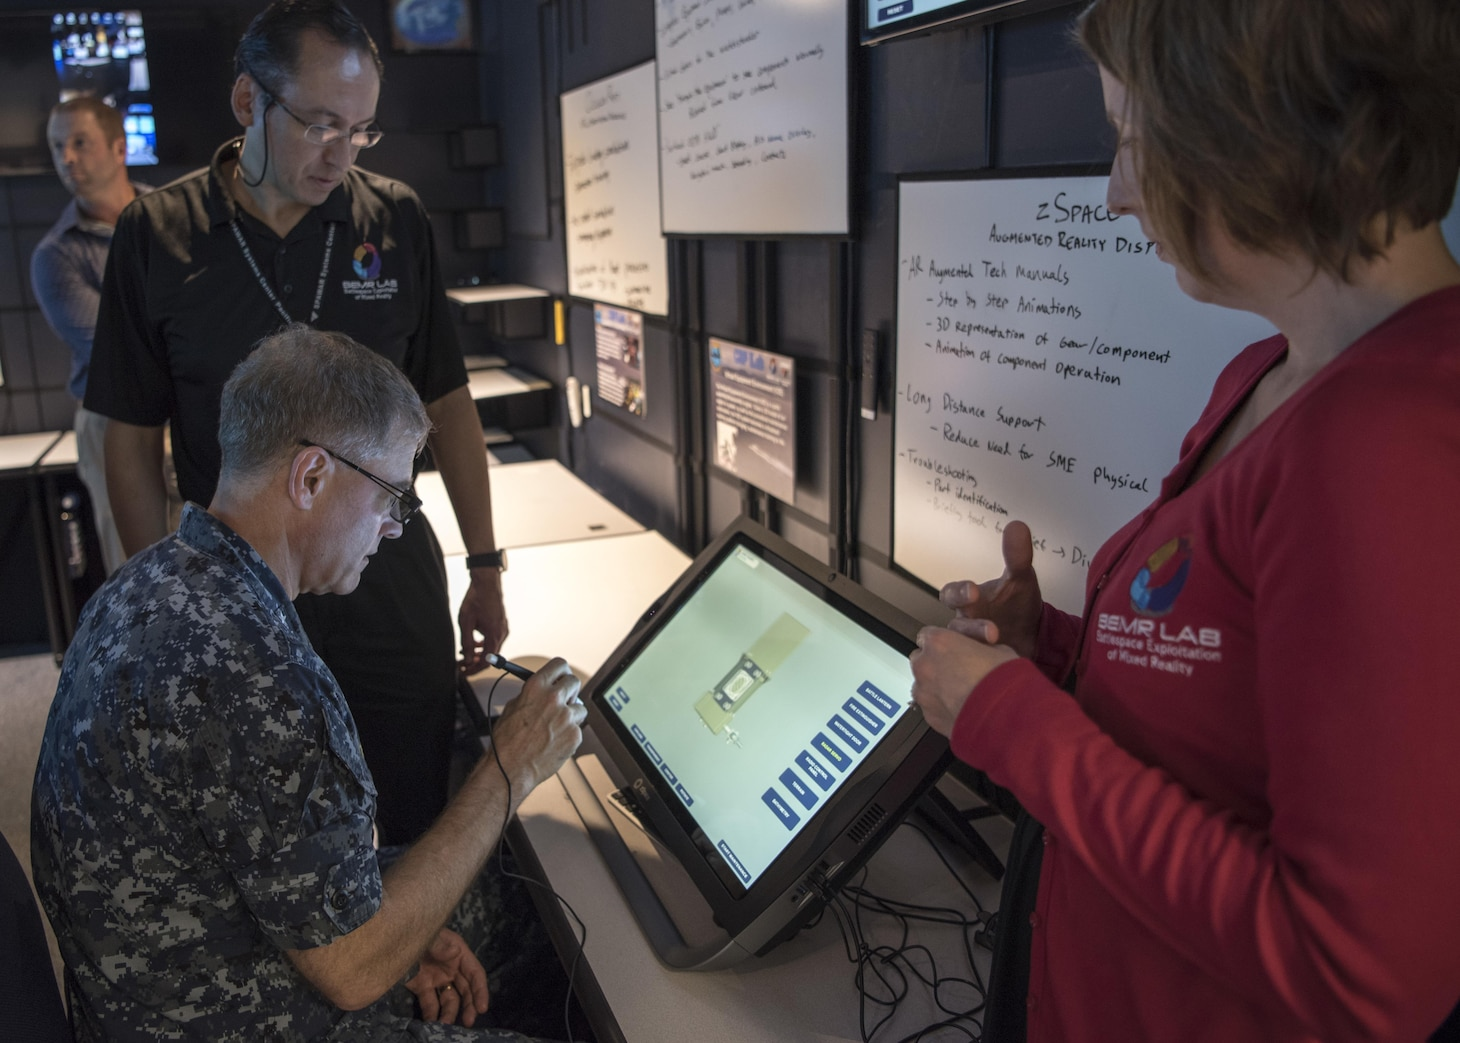 161104-N-LY160-043 PEARL HARBOR, Hawaii (Nov. 7, 2016) Rear Adm. Fritz Roegge, commander, Submarine Force U.S. Pacific Fleet (COMSUBPAC), participates in an augmented-reality demonstration at the official opening of the COMSUBPAC Innovation Lab (iLab) at Naval Submarine Training Center Pacifc in Joint Base Pearl Harbor-Hickam, Nov. 7. The iLab's mission is to provide Sailors with cutting-edge battlespace visualization capabilities using virtual and augmented reality. (U.S. Navy photo by Petty Officer 2nd Class Michael H. Lee/Released)